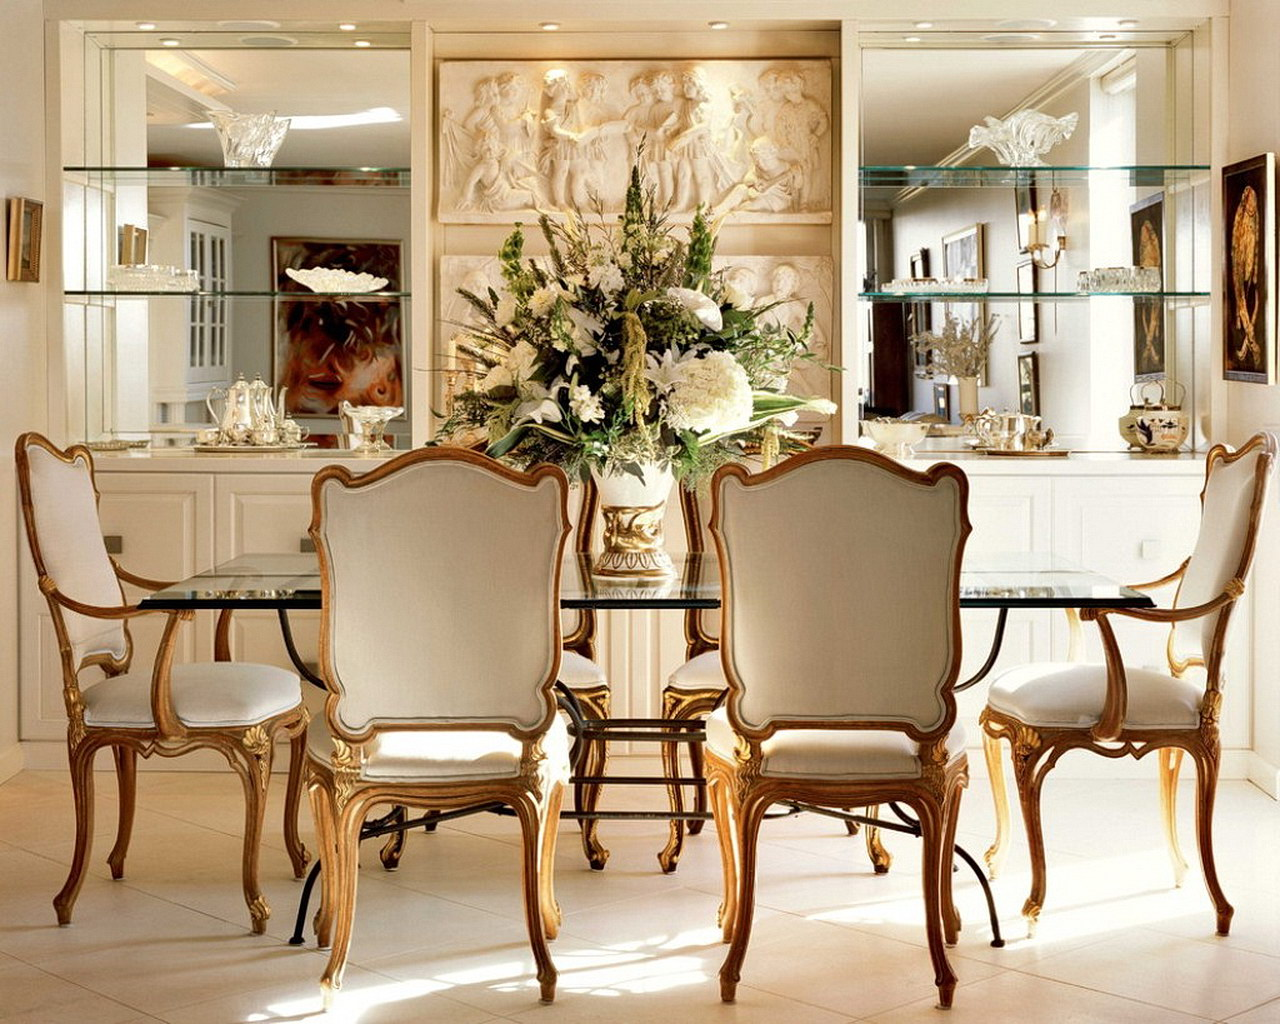 small dining room chairs wishbone chair replica 79 handpicked ideas for sweet home interior